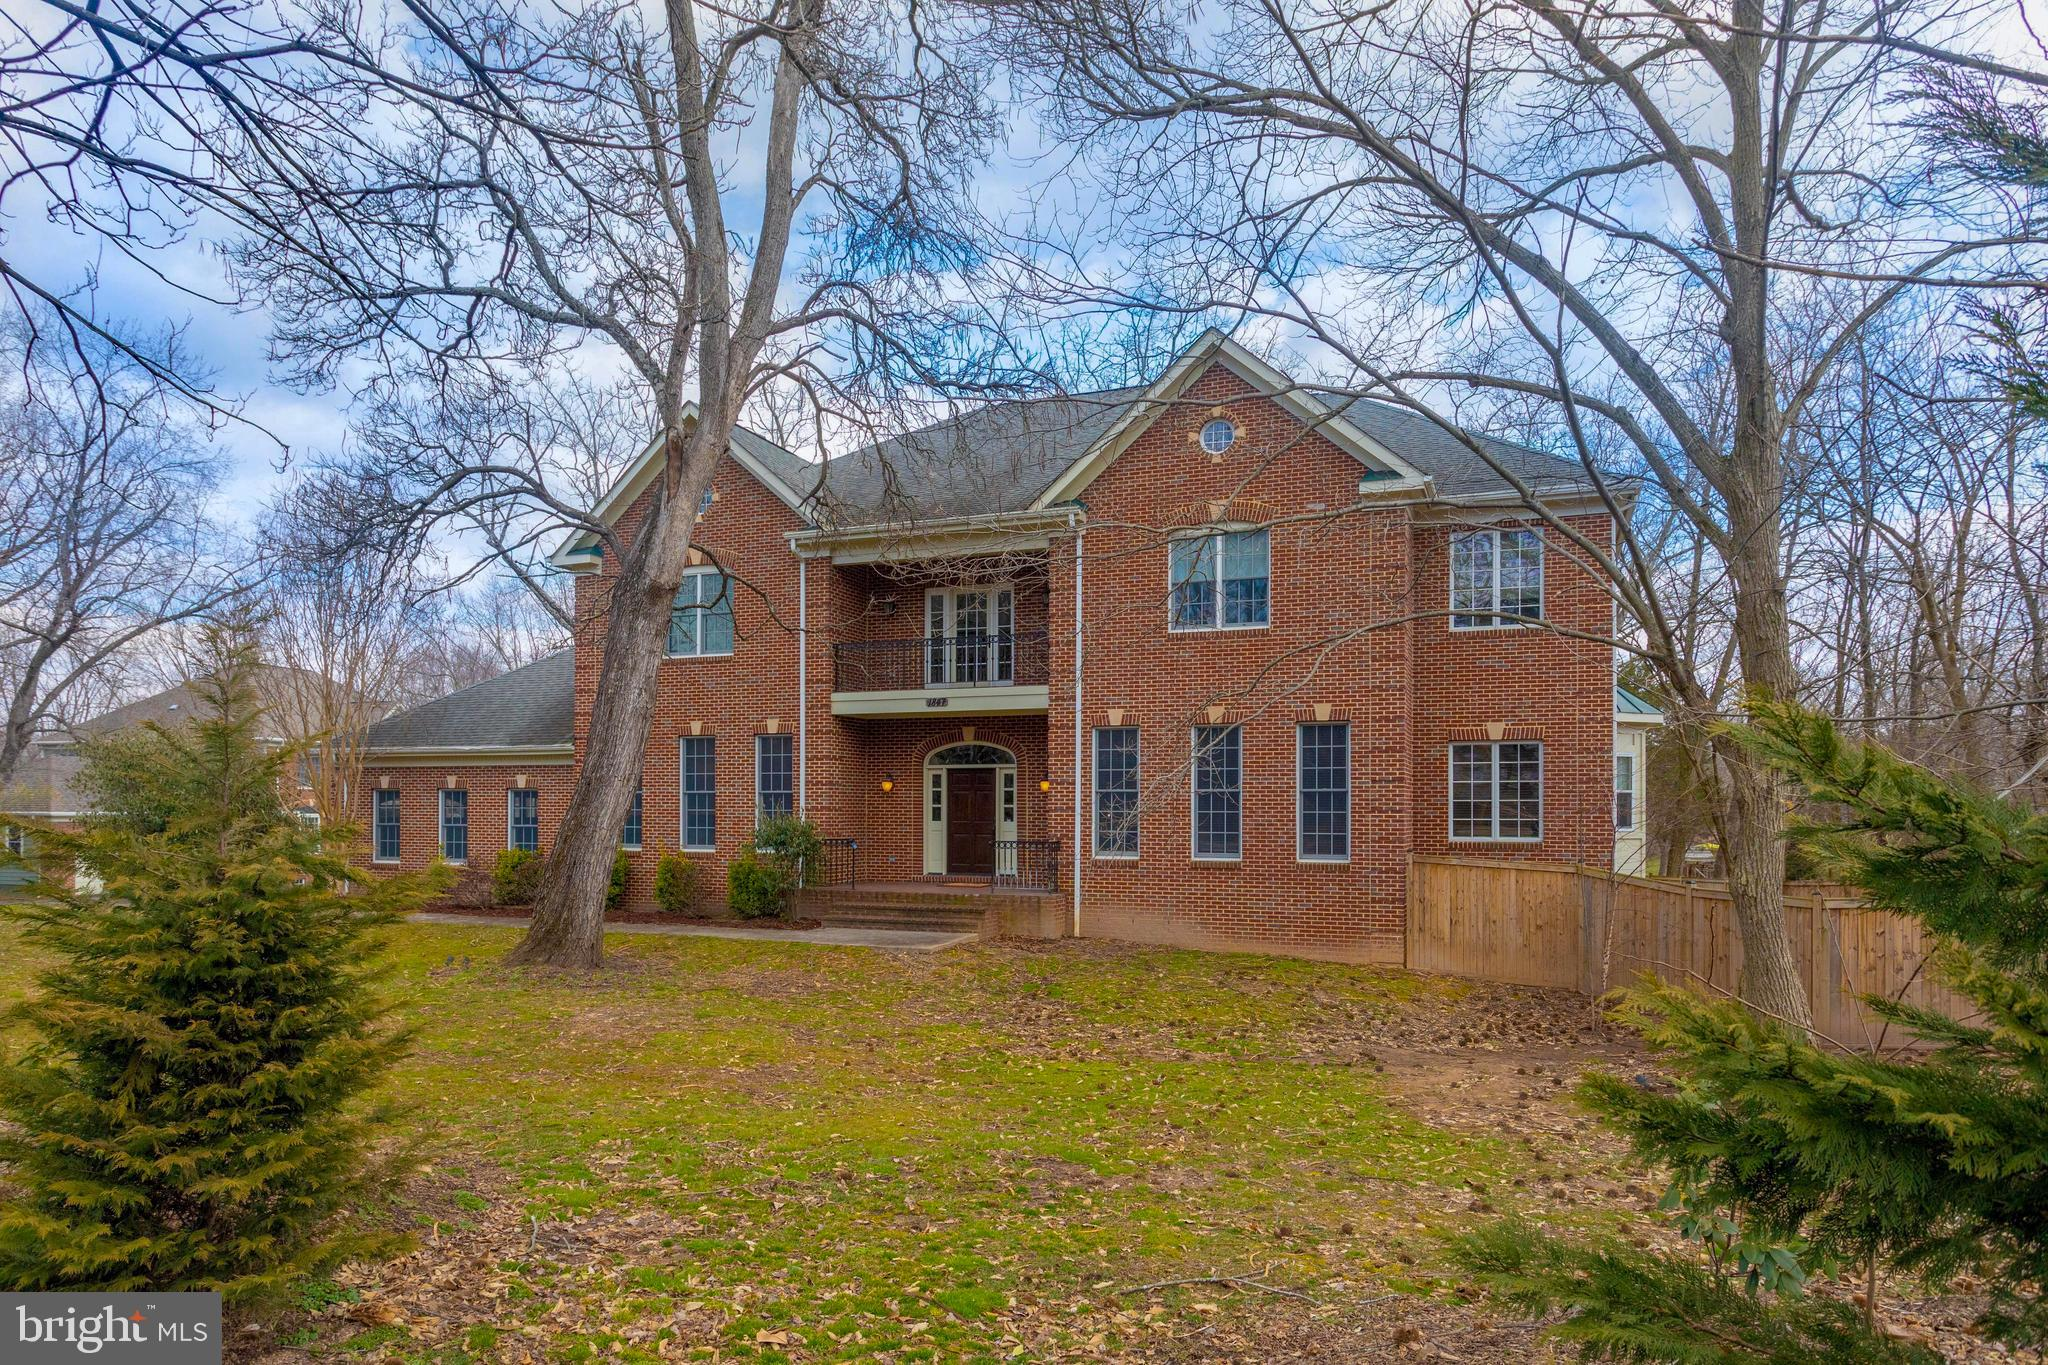 1847 HUNTER MILL, VIENNA, VA 22182